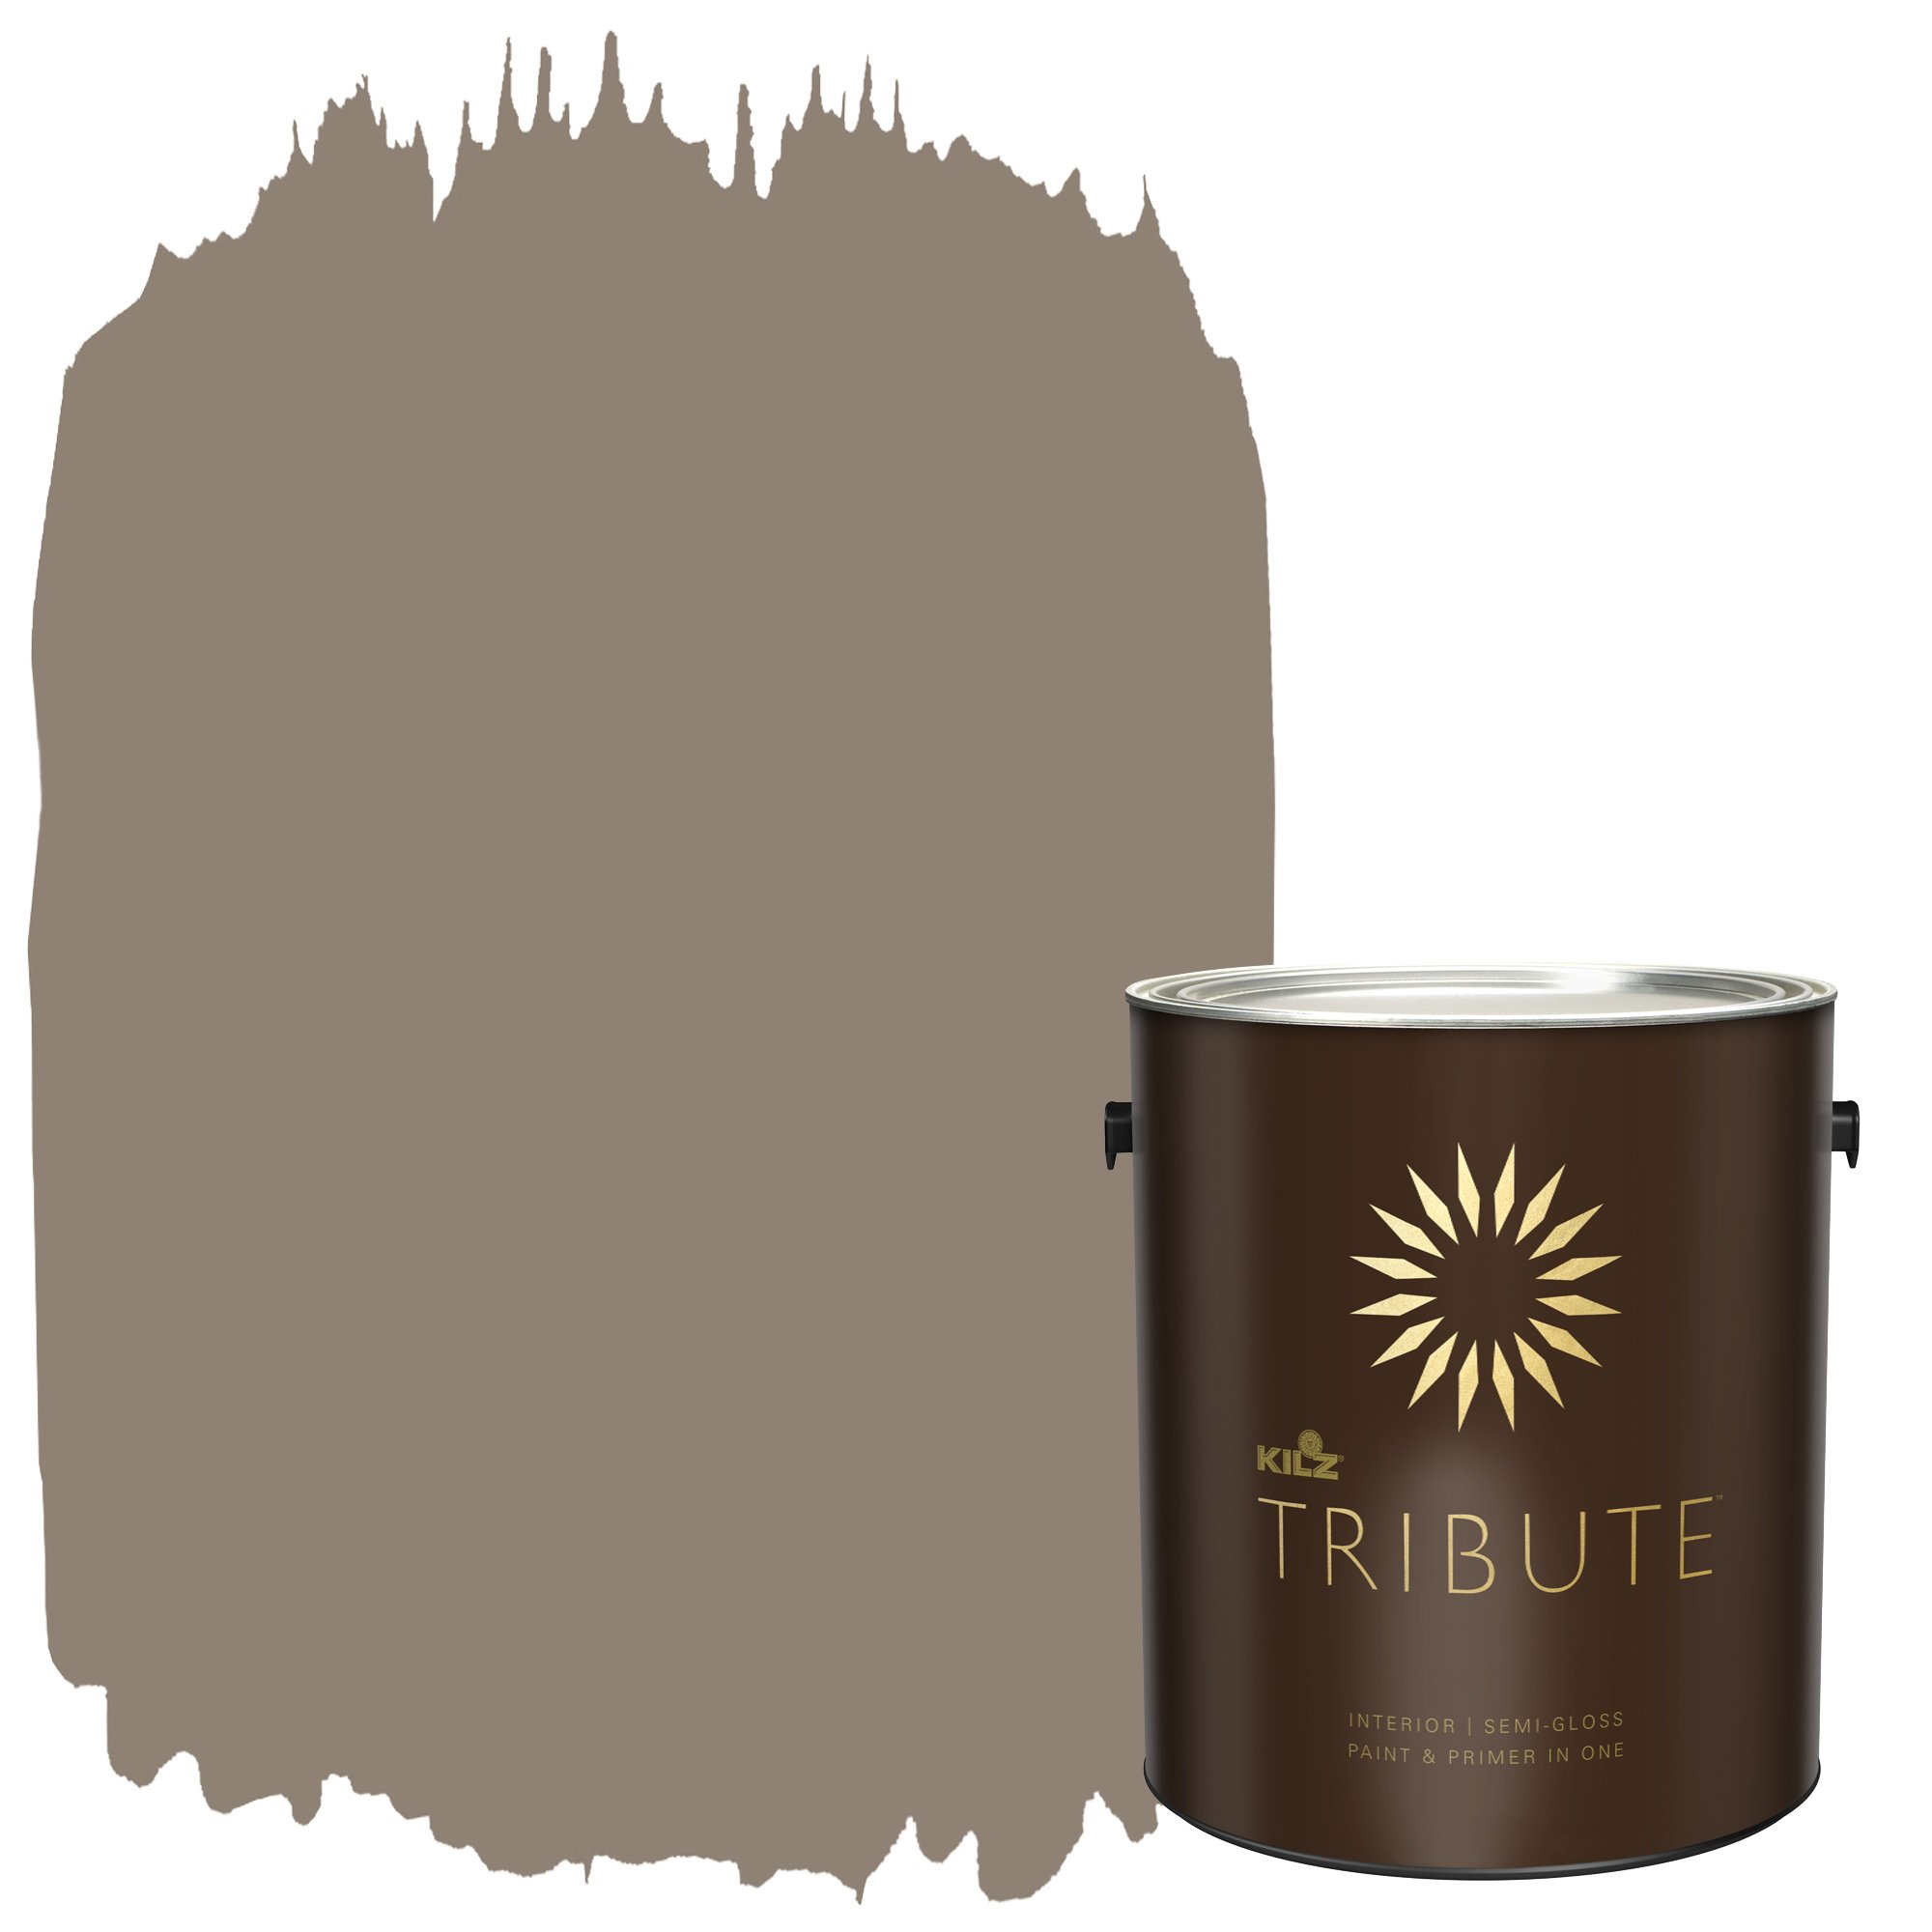 KILZ TRIBUTE Interior Semi-Gloss Paint and Primer in One, 1 Gallon, Cobblestone Streets (TB-19)